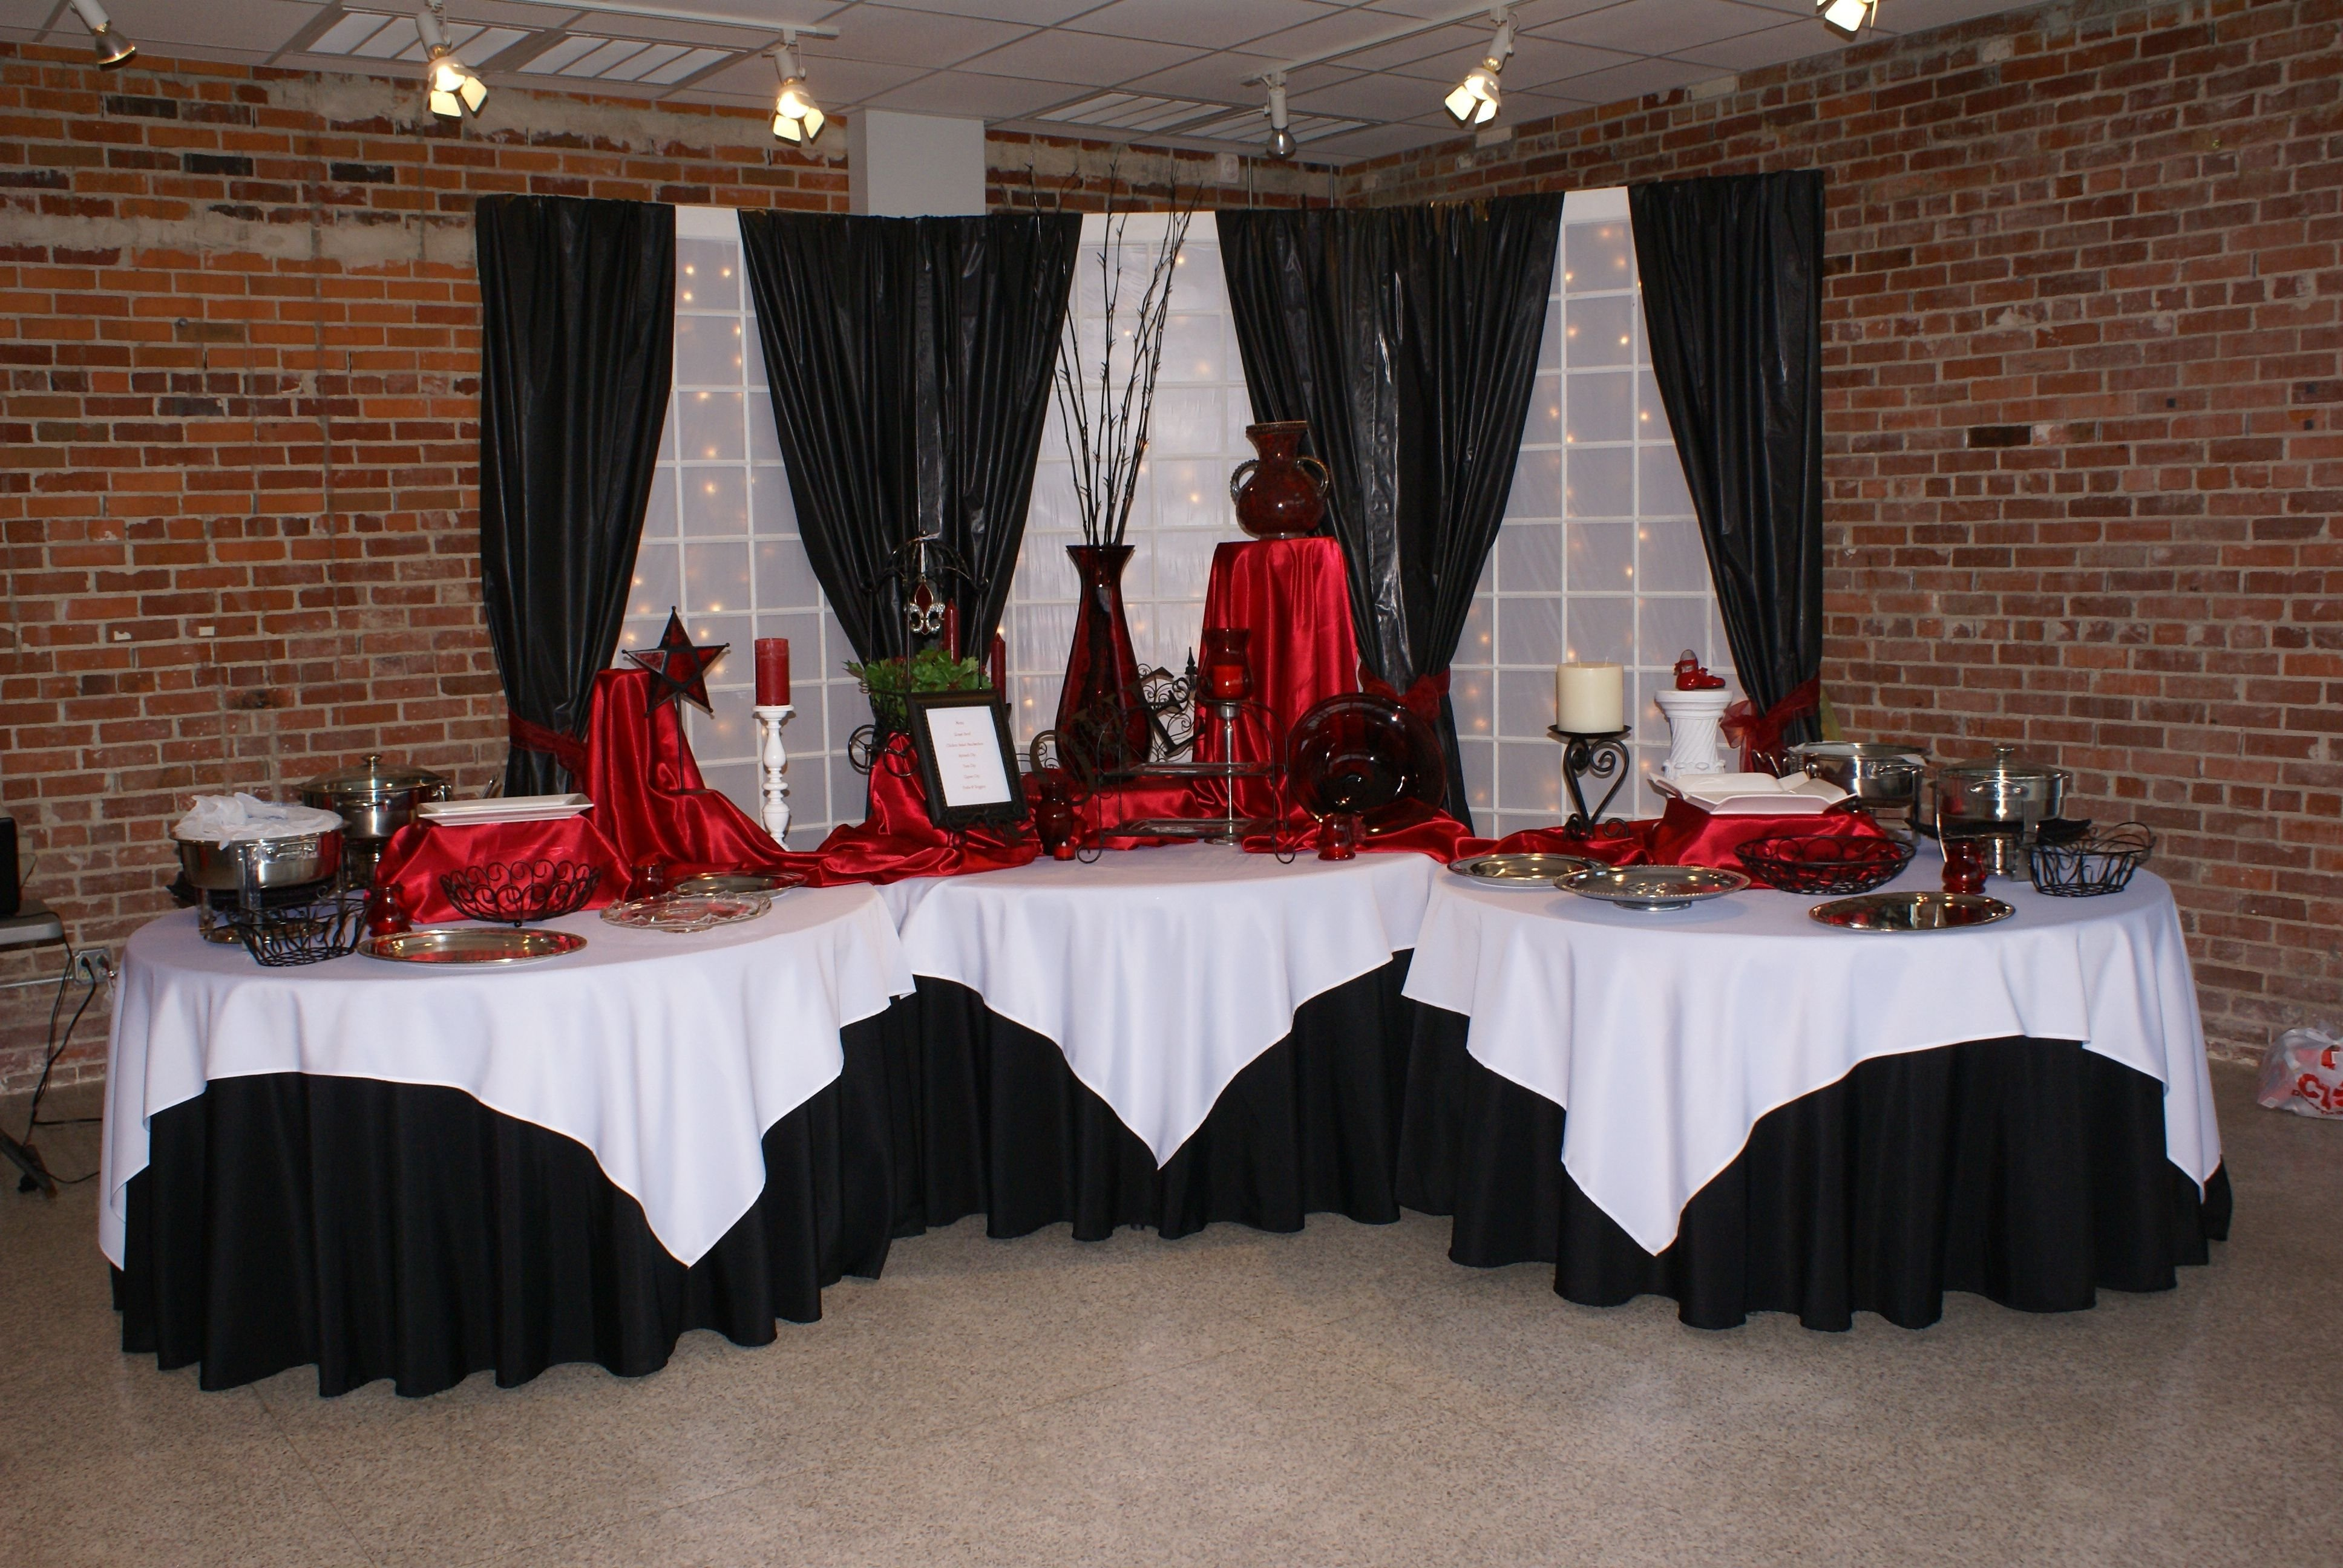 10 nice black white and red wedding ideas 10 nice black white and red wedding ideas red white andk wedding decorations candy centerpieces ideas junglespirit Gallery